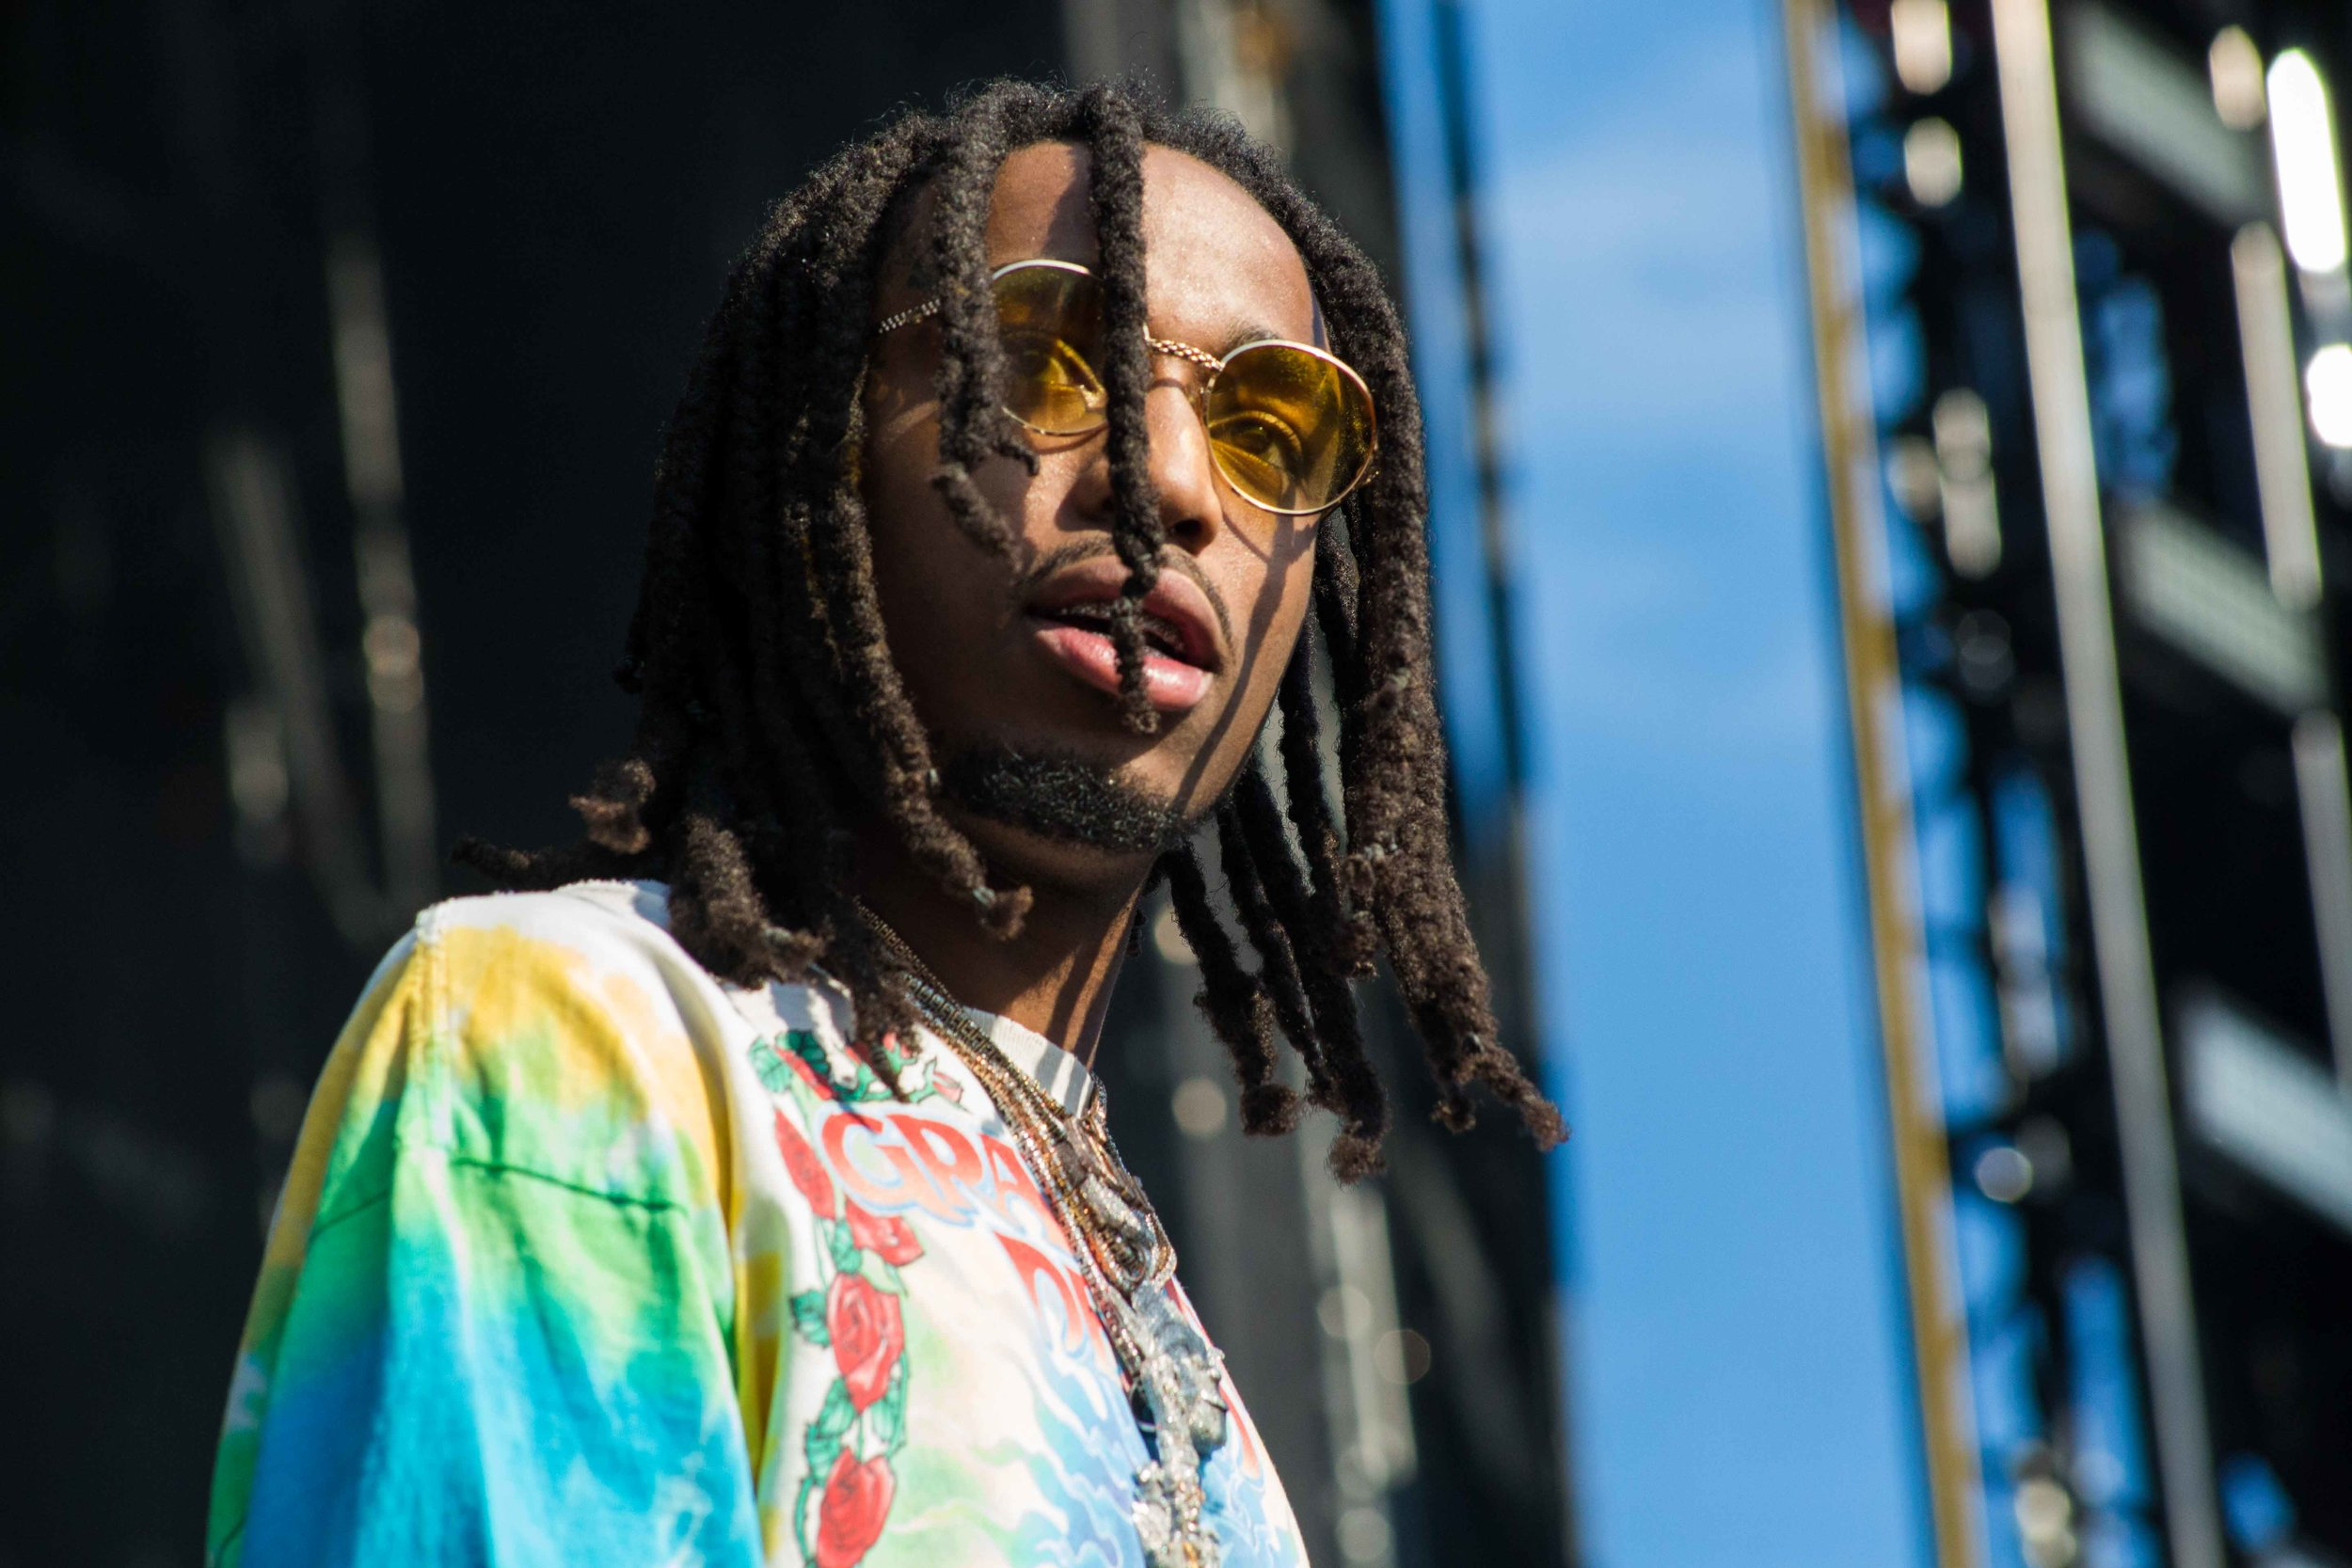 Quavo by Mike Lavin @thehomelesspimp 2.jpg